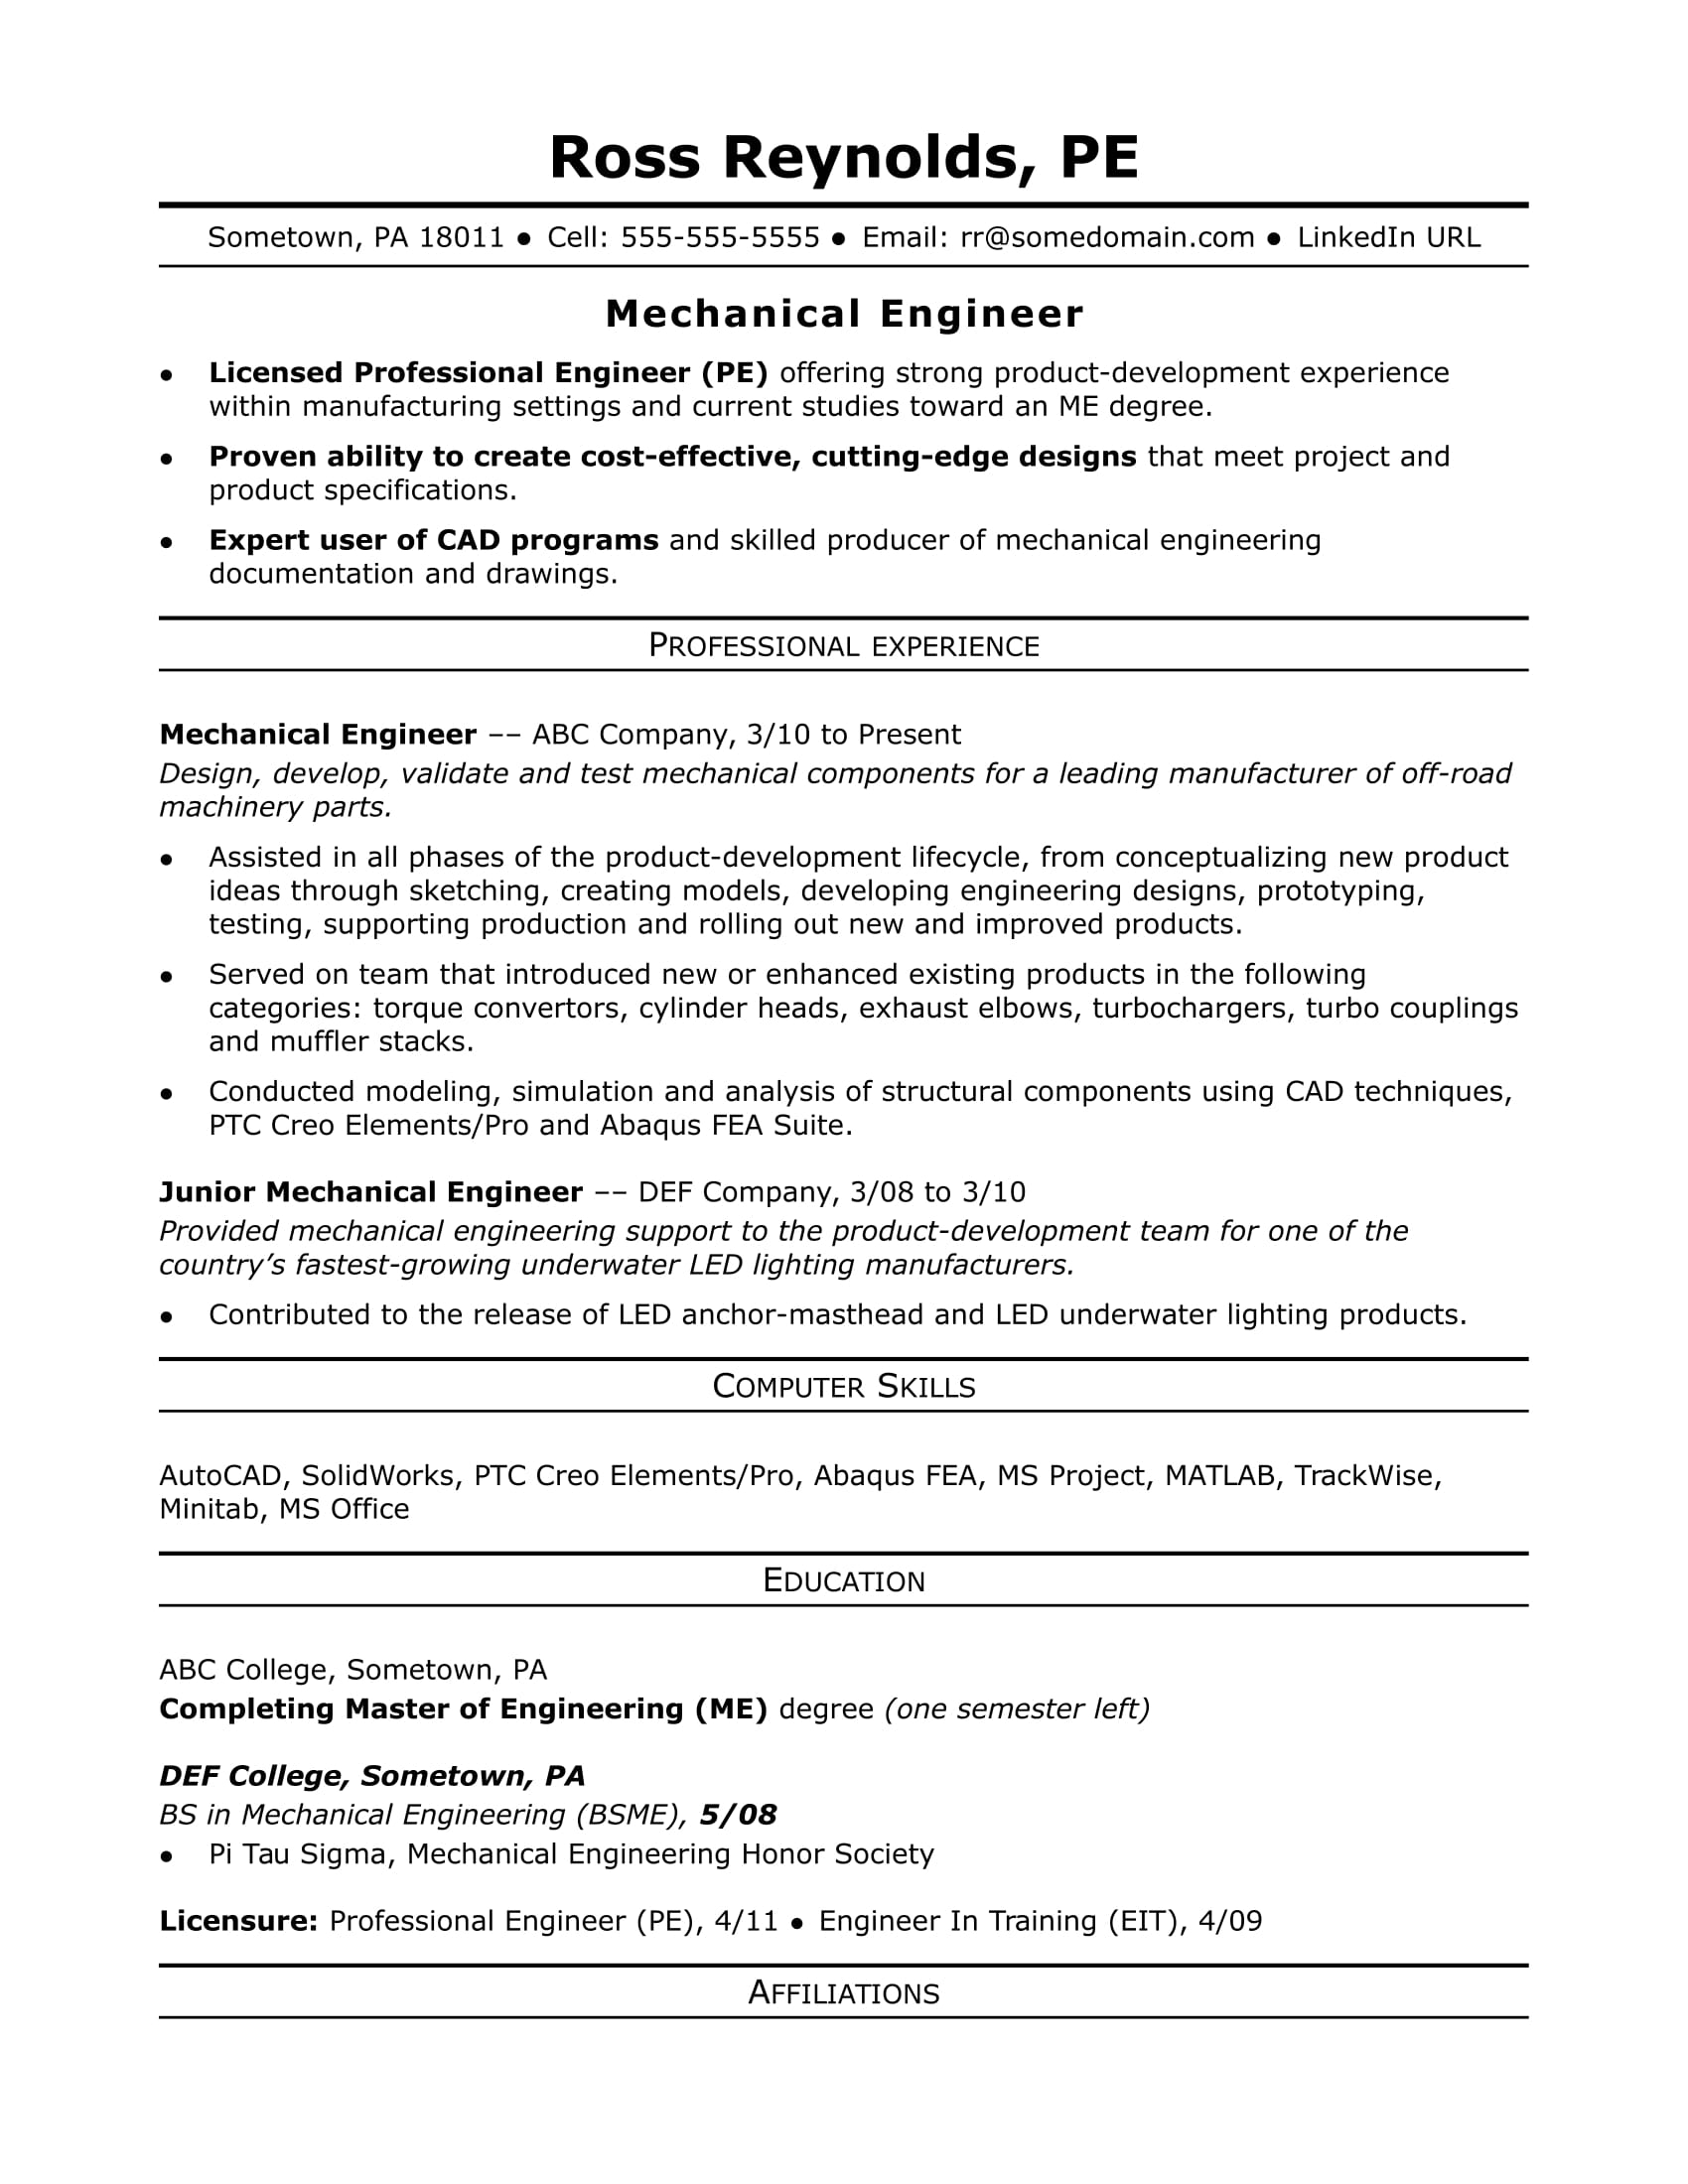 Superior Sample Resume For A Midlevel Mechanical Engineer